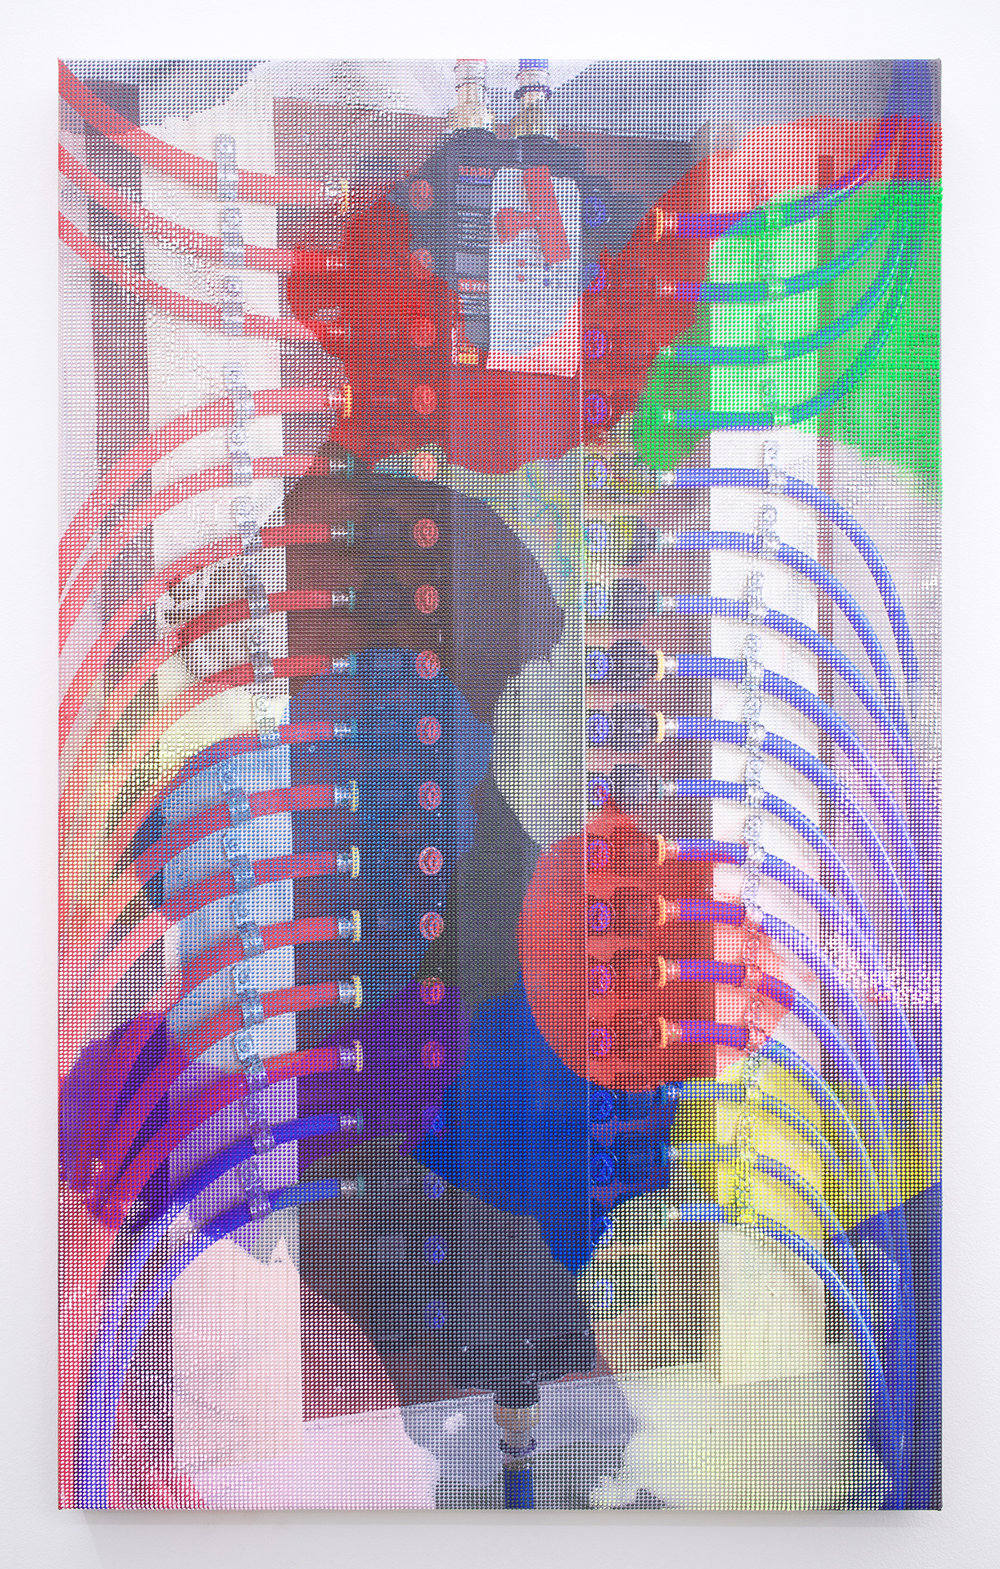 "EVAN NESBIT  Manifold Painting (Manifold #2) , 2017 acrylic, UV curable ink on vinyl coated mesh fabric, 30"" x 18"""